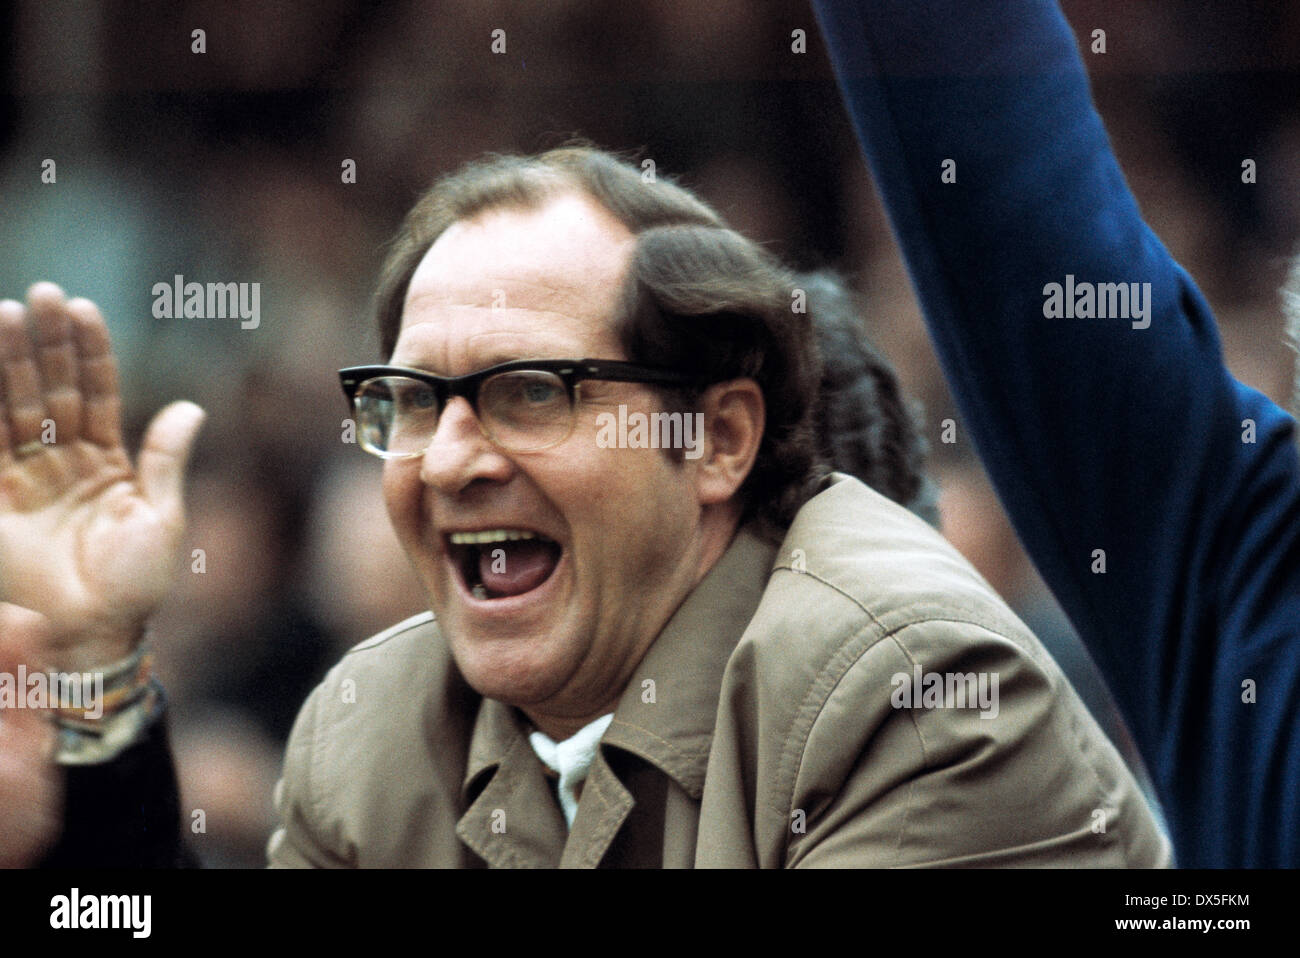 football, 2. Bundesliga Nord, 1974/1975, Stadium am Uhlenkrug, ETB Schwarz Weiss Essen versus FC Bayer 05 Uerdingen 1:2, coaching bench Uerdingen, coach Klaus Quinkert recoicing at a goal - Stock Image